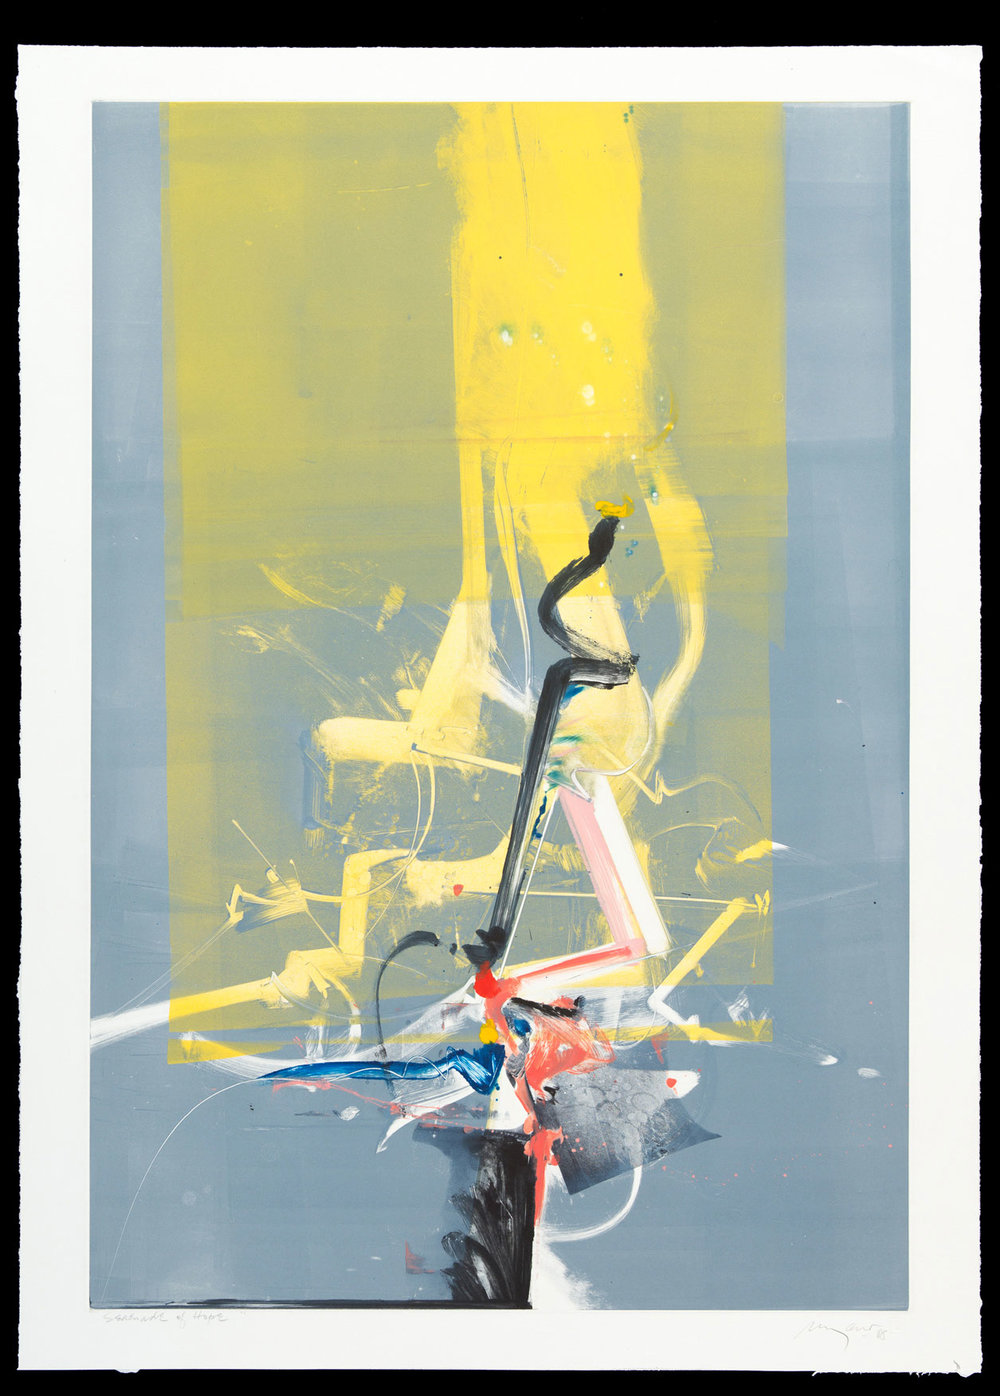 Serenade of Hope, 1988, monotype, 23.5 x 34.5 in.